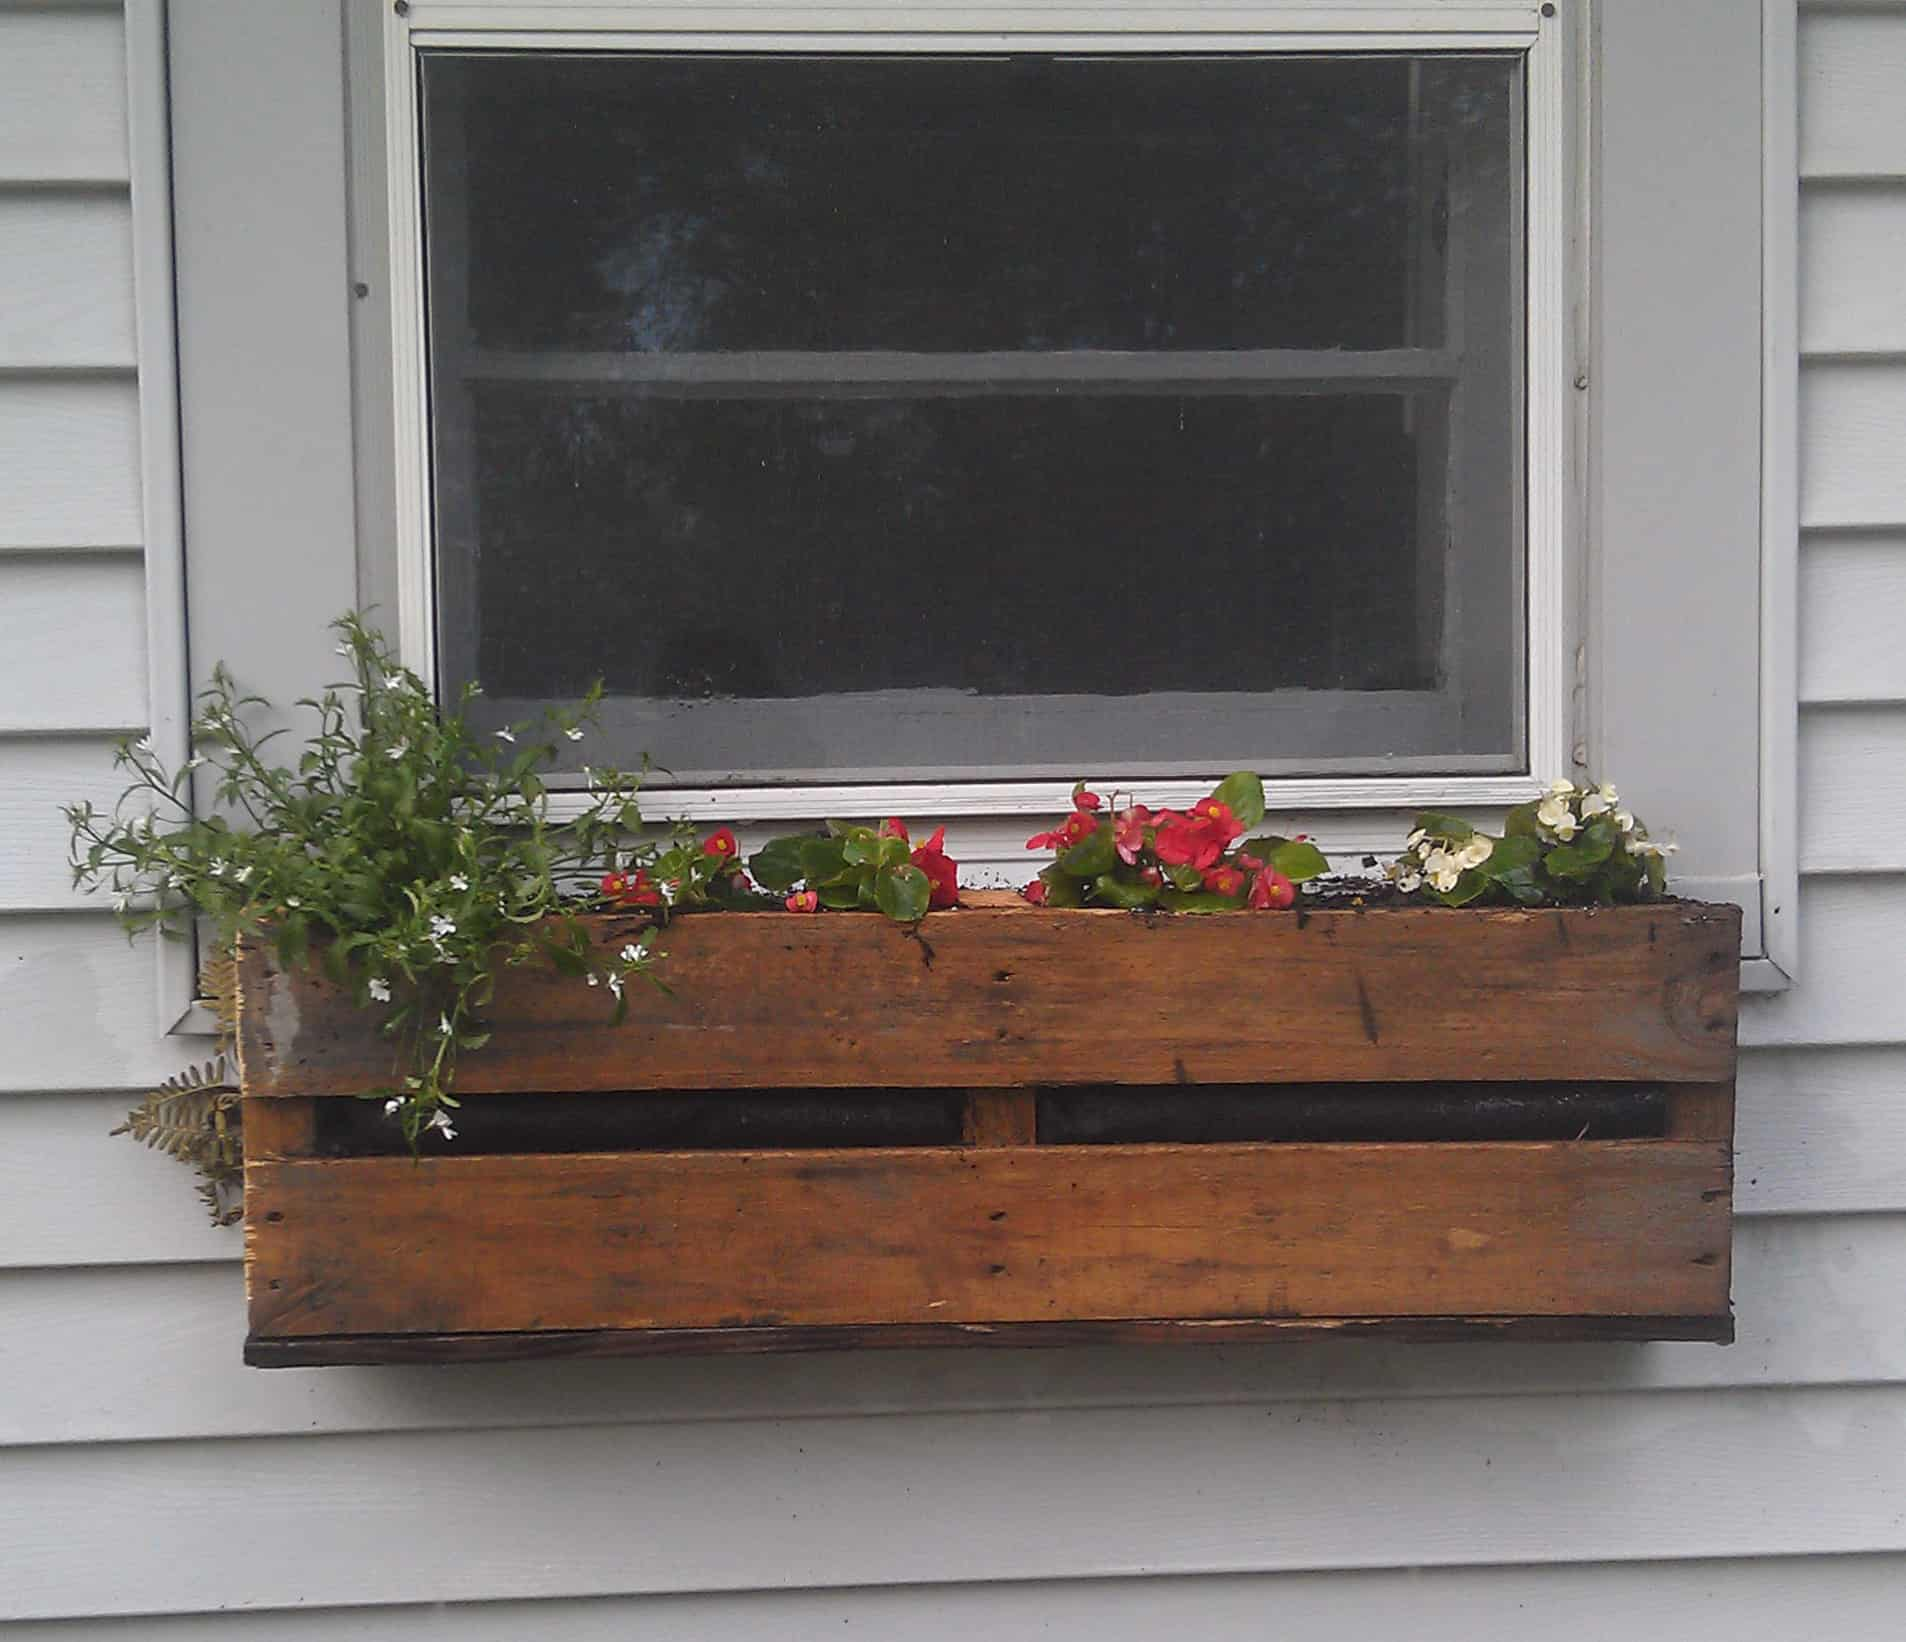 Wooden pallet window box